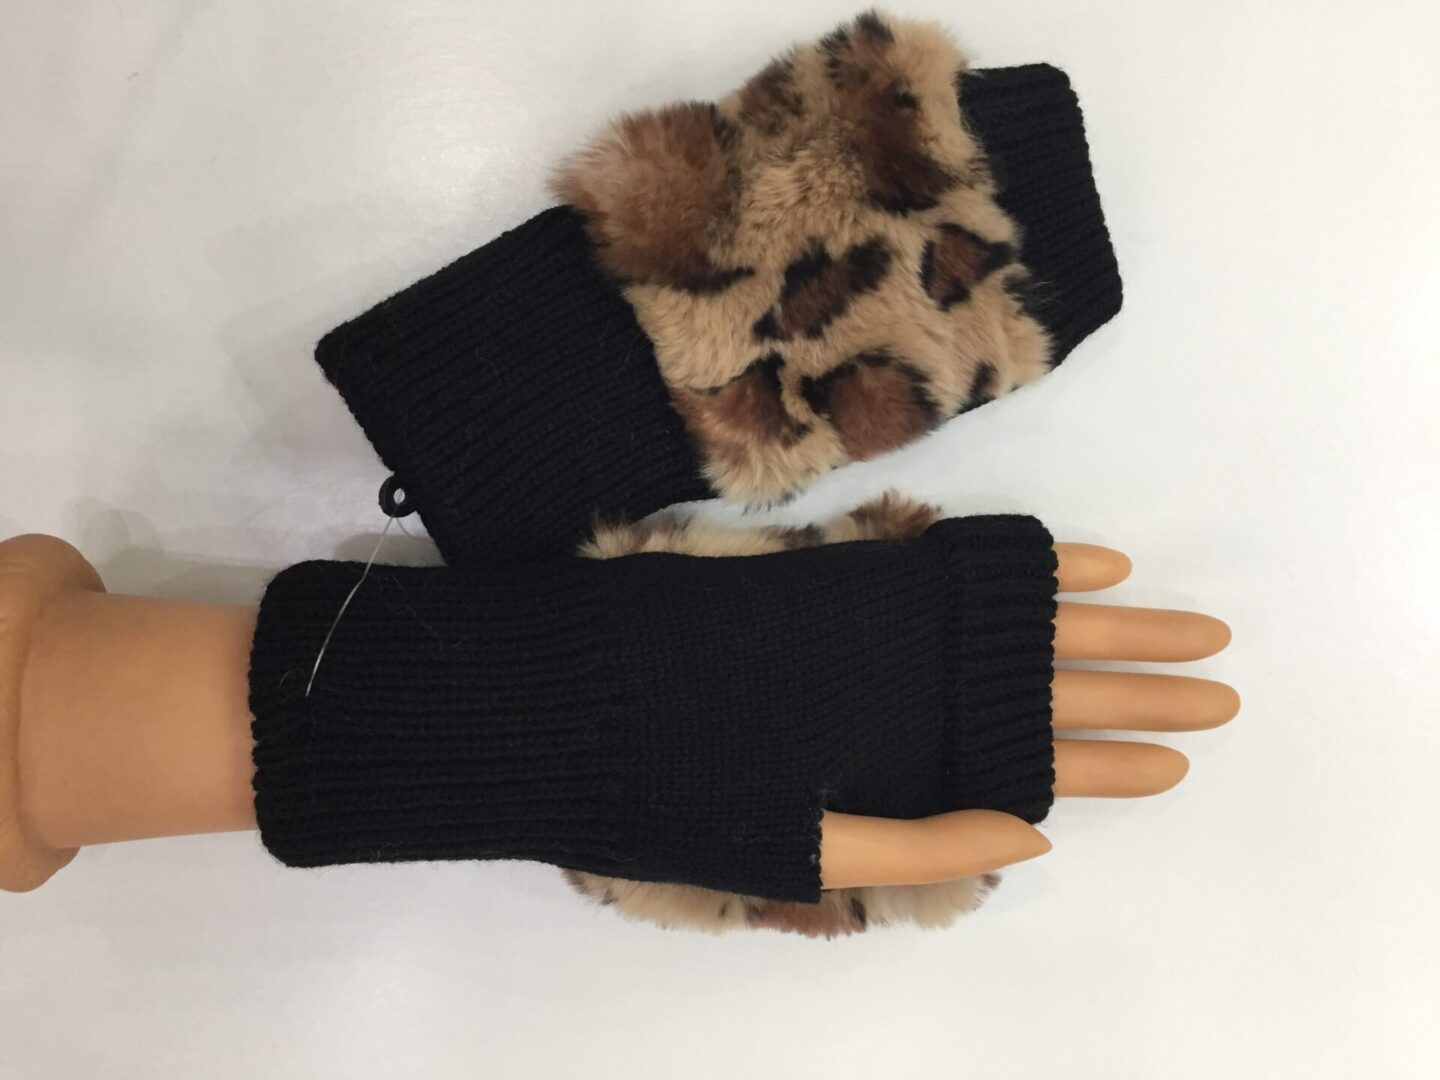 small photo of plastic hand wearing black knit fingerless gloves with animal print